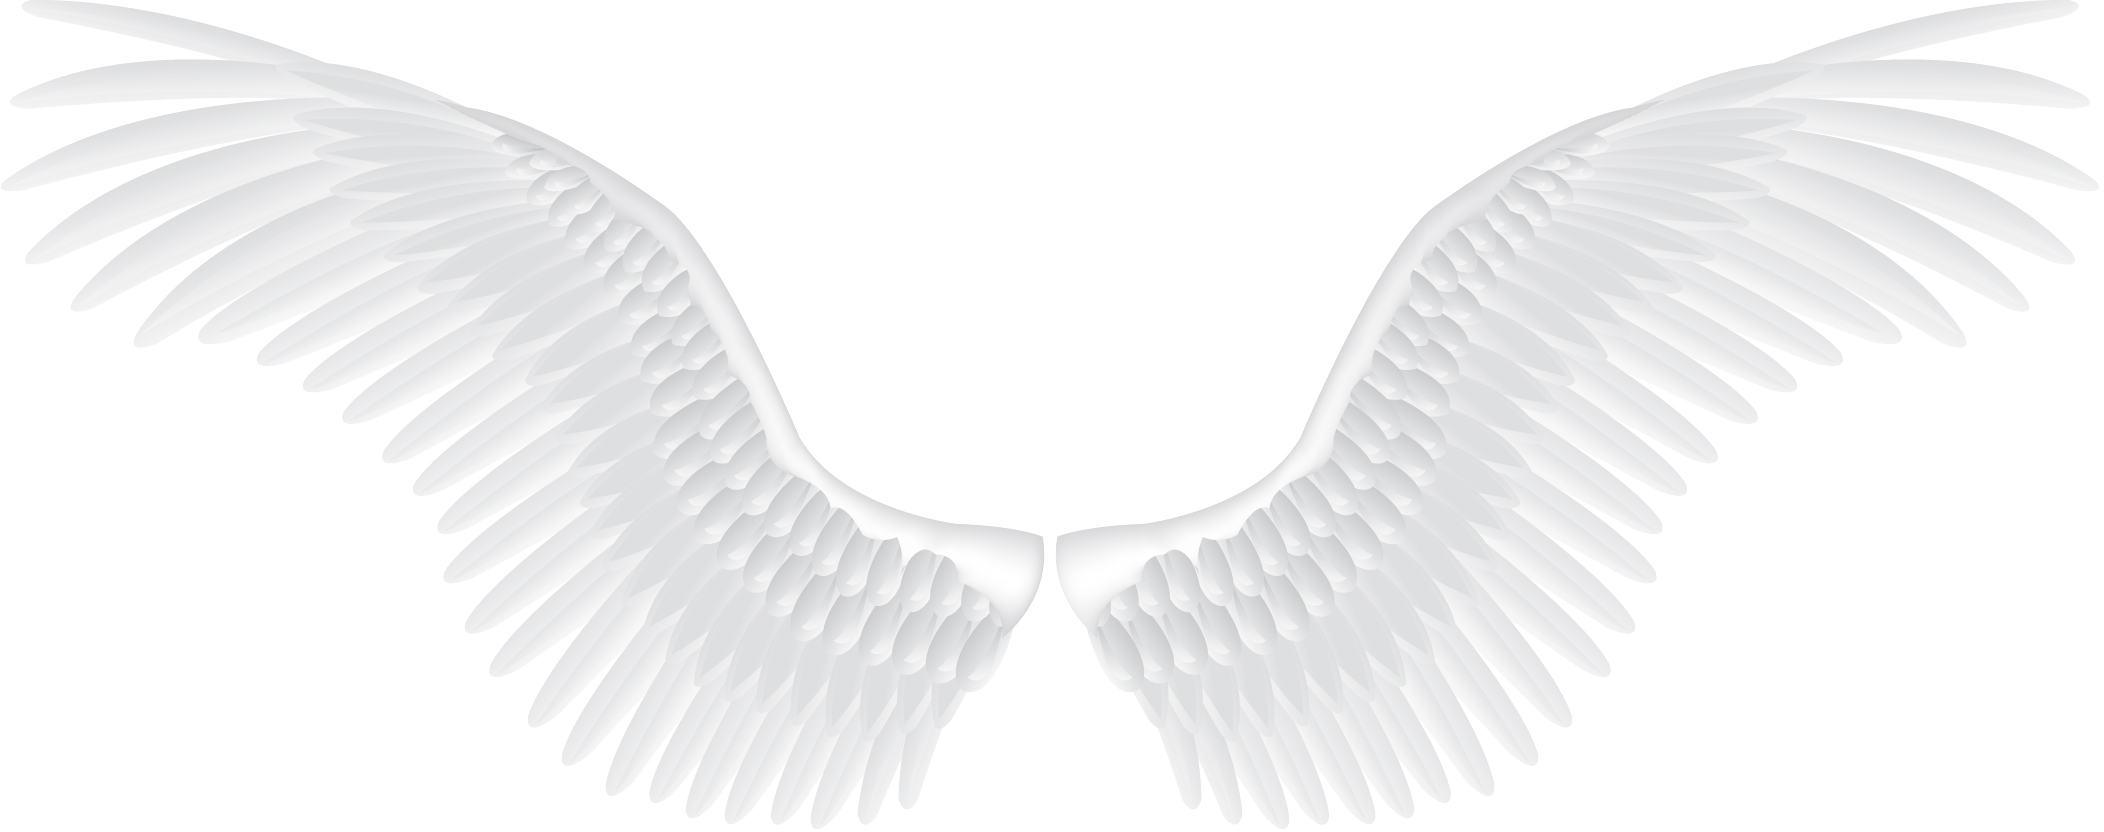 Background Png Hd Wings Transparent image #36461